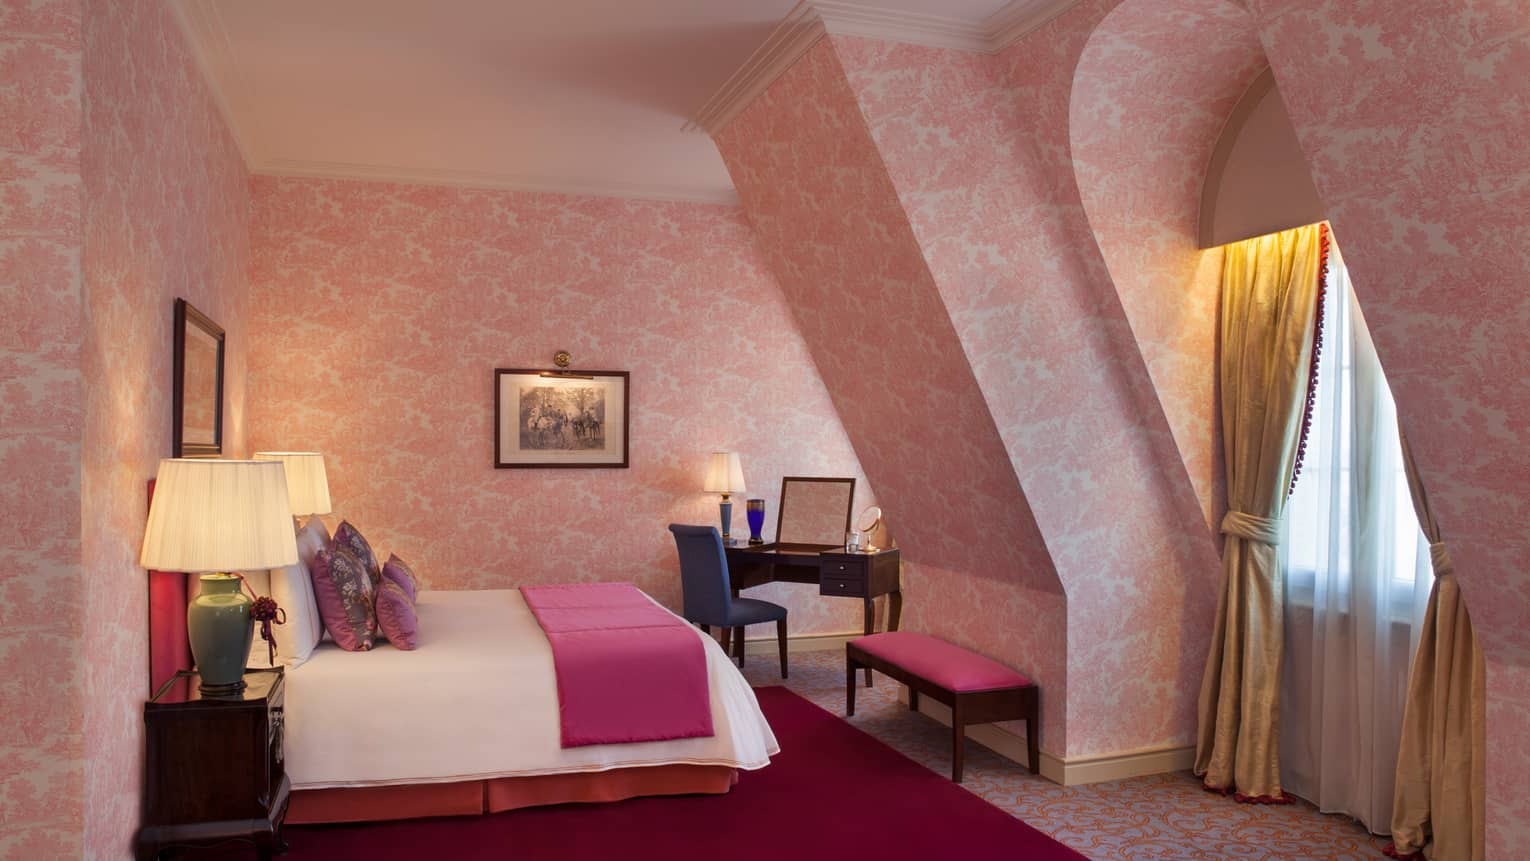 La Mansión Diplomatic Premier Suite with pink-patterned wallpaper on sloped walls, bed, bench and desk